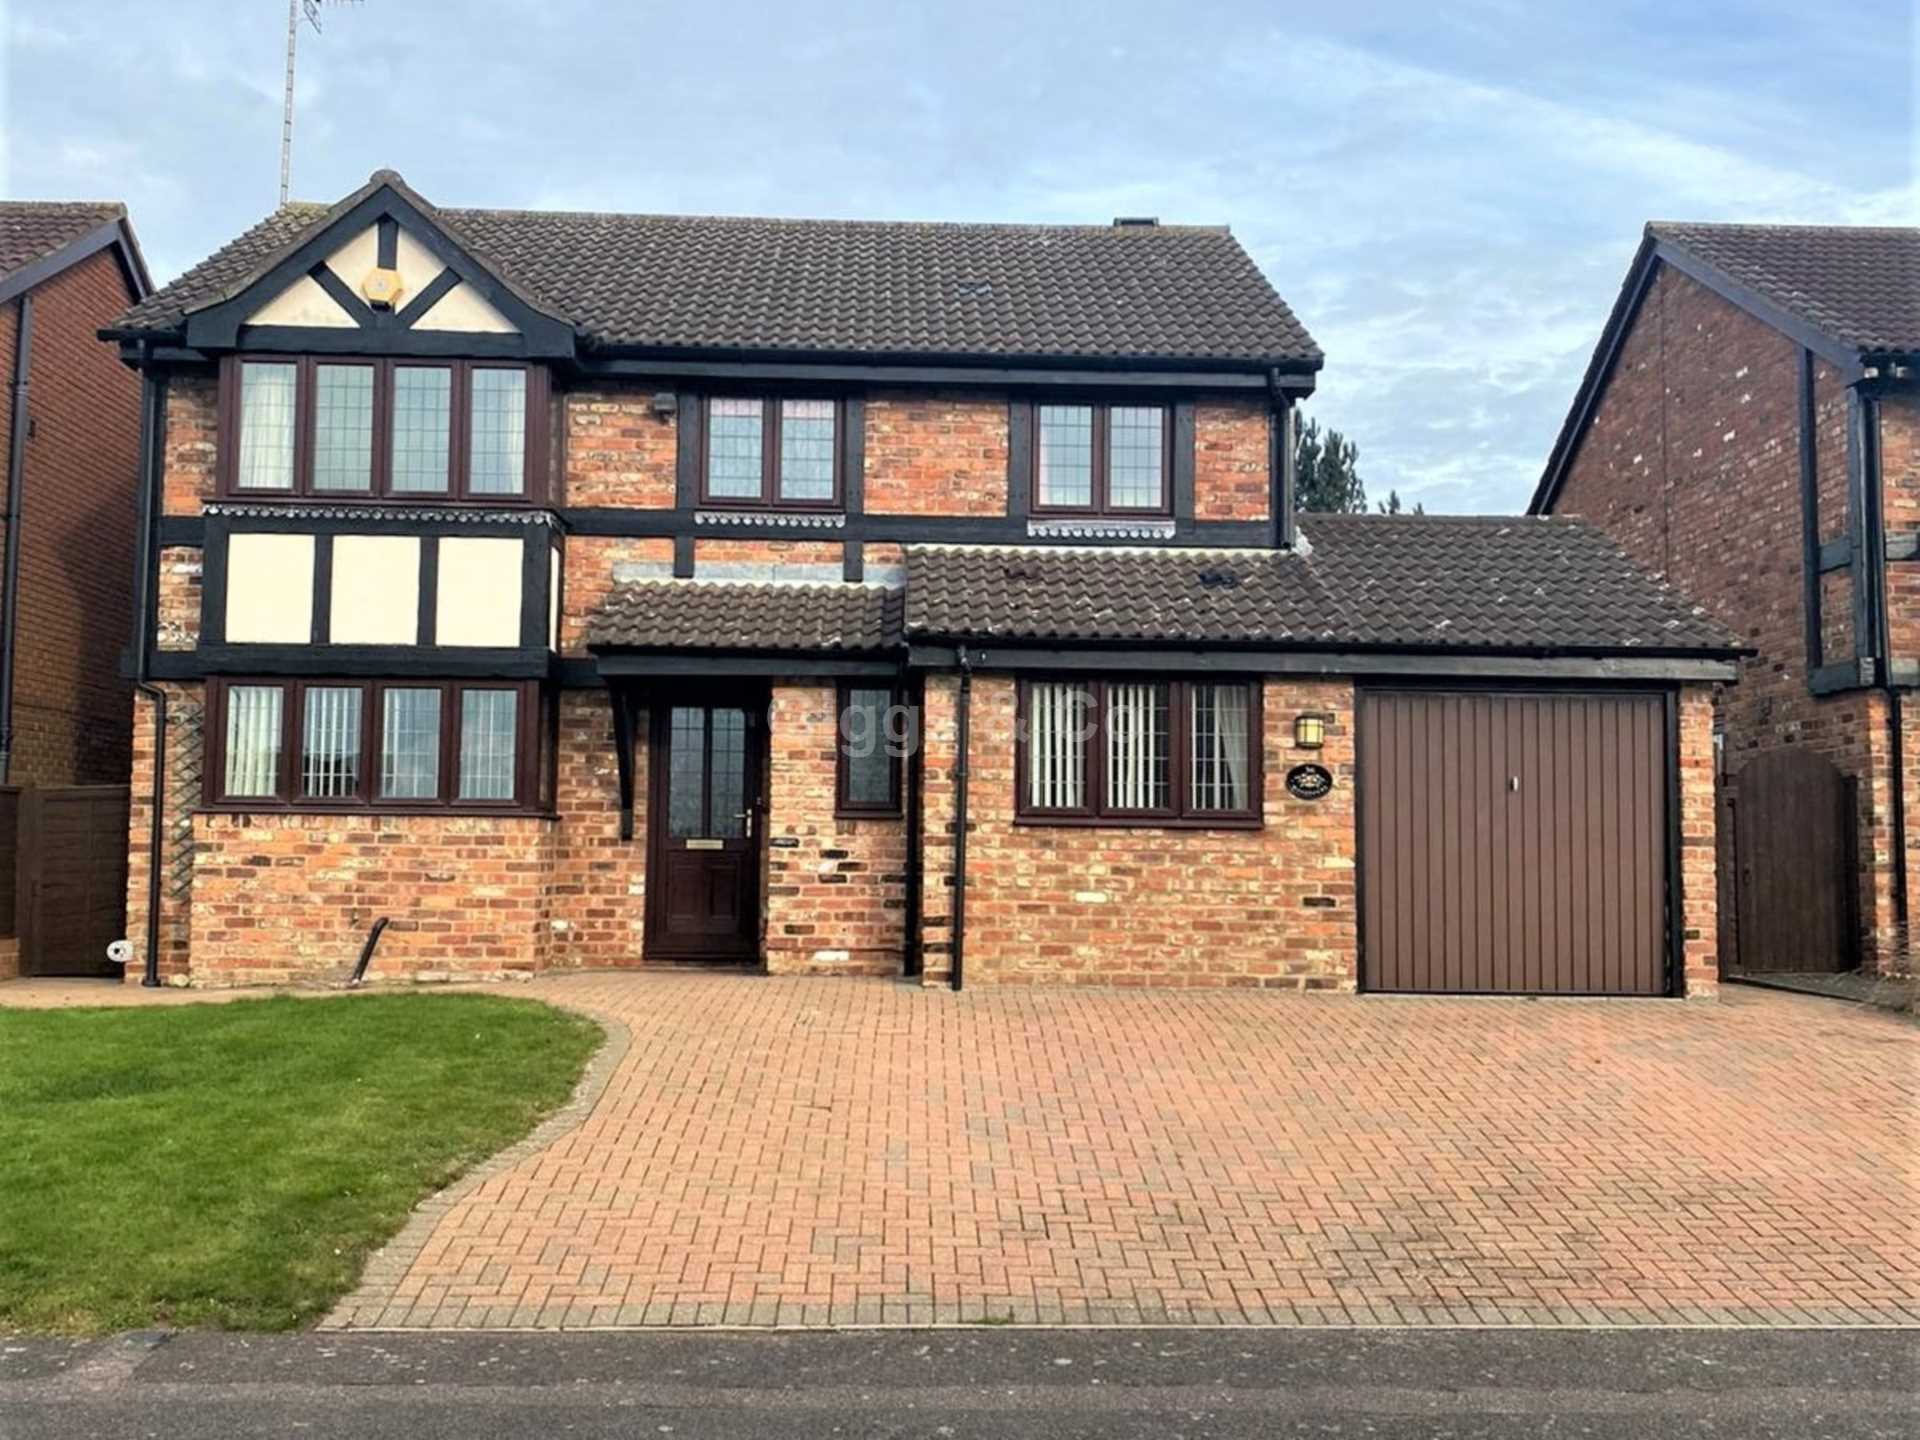 4 bed detached house to rent in Woodmere, Luton - Property Image 1